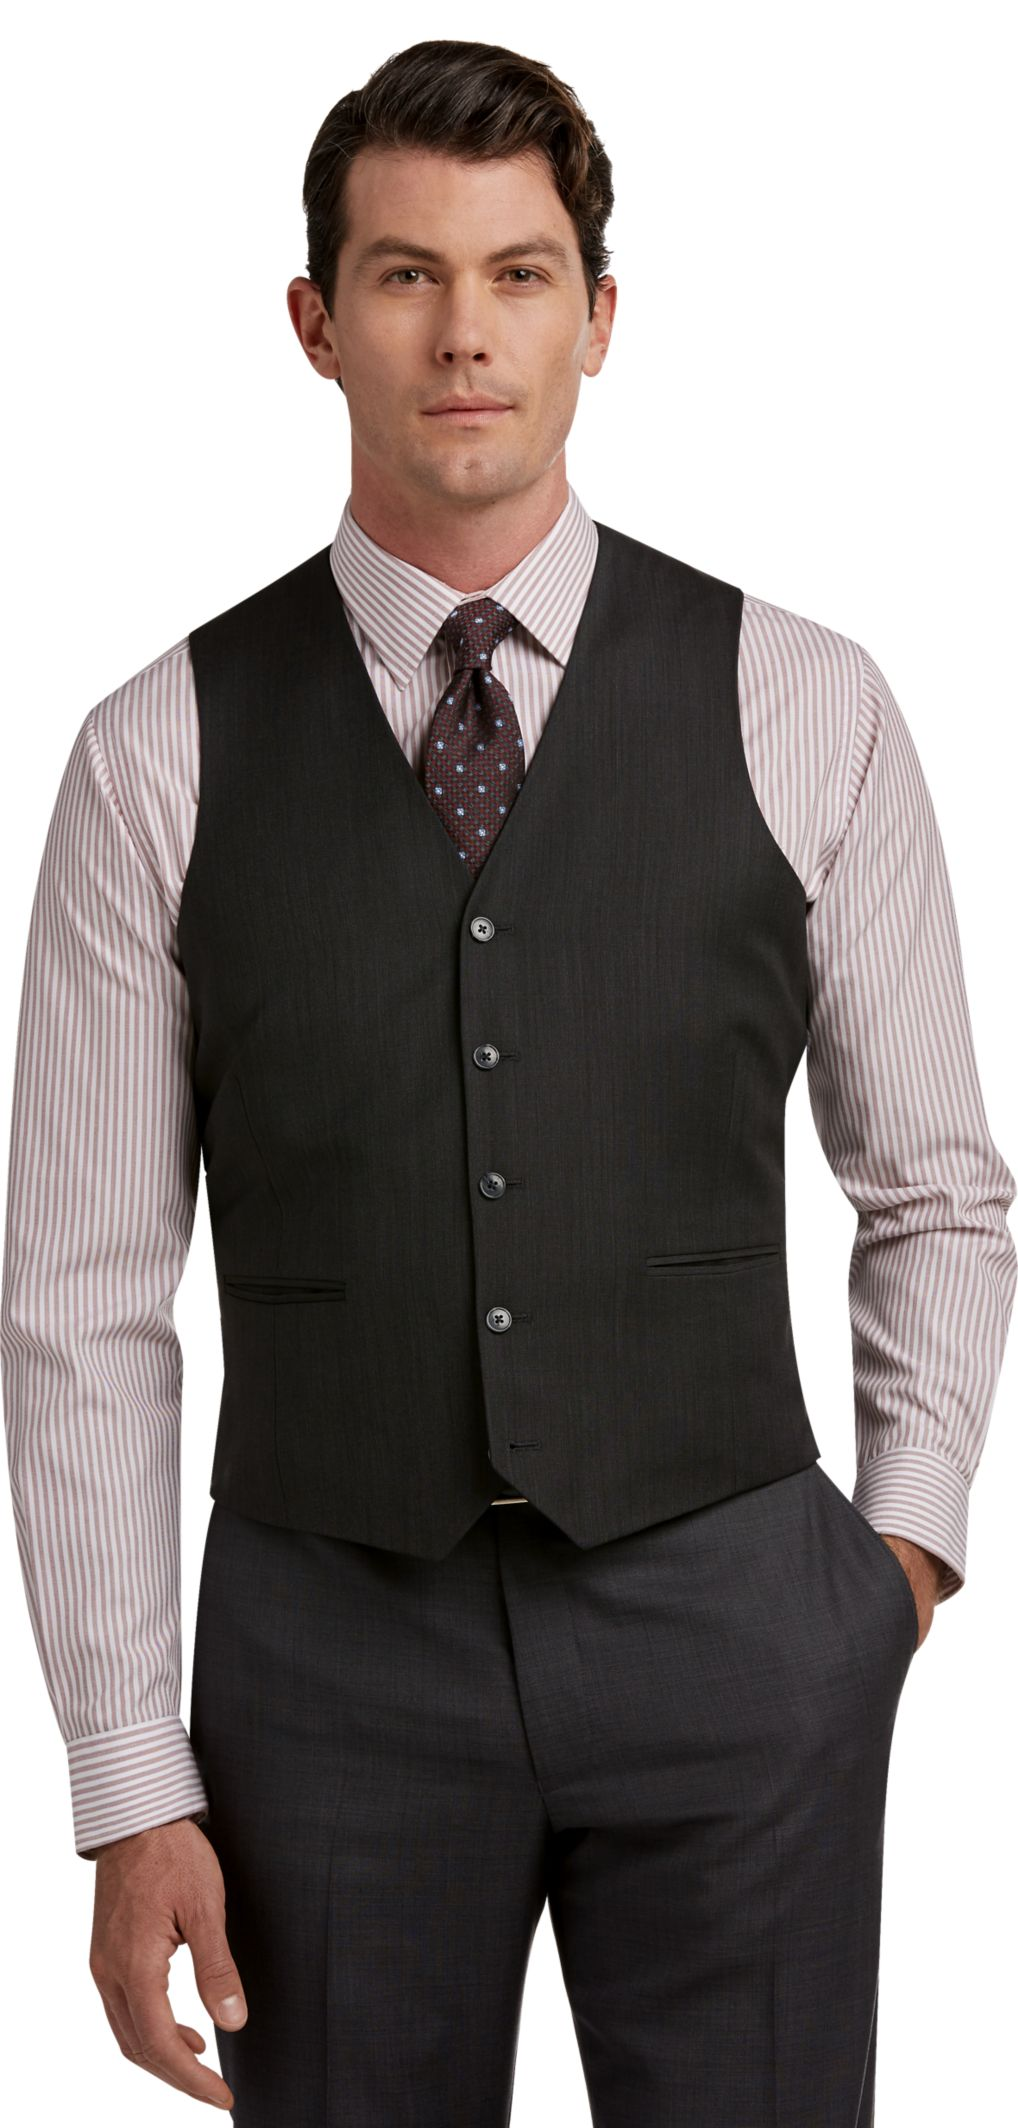 vest and tie combo photo - 1